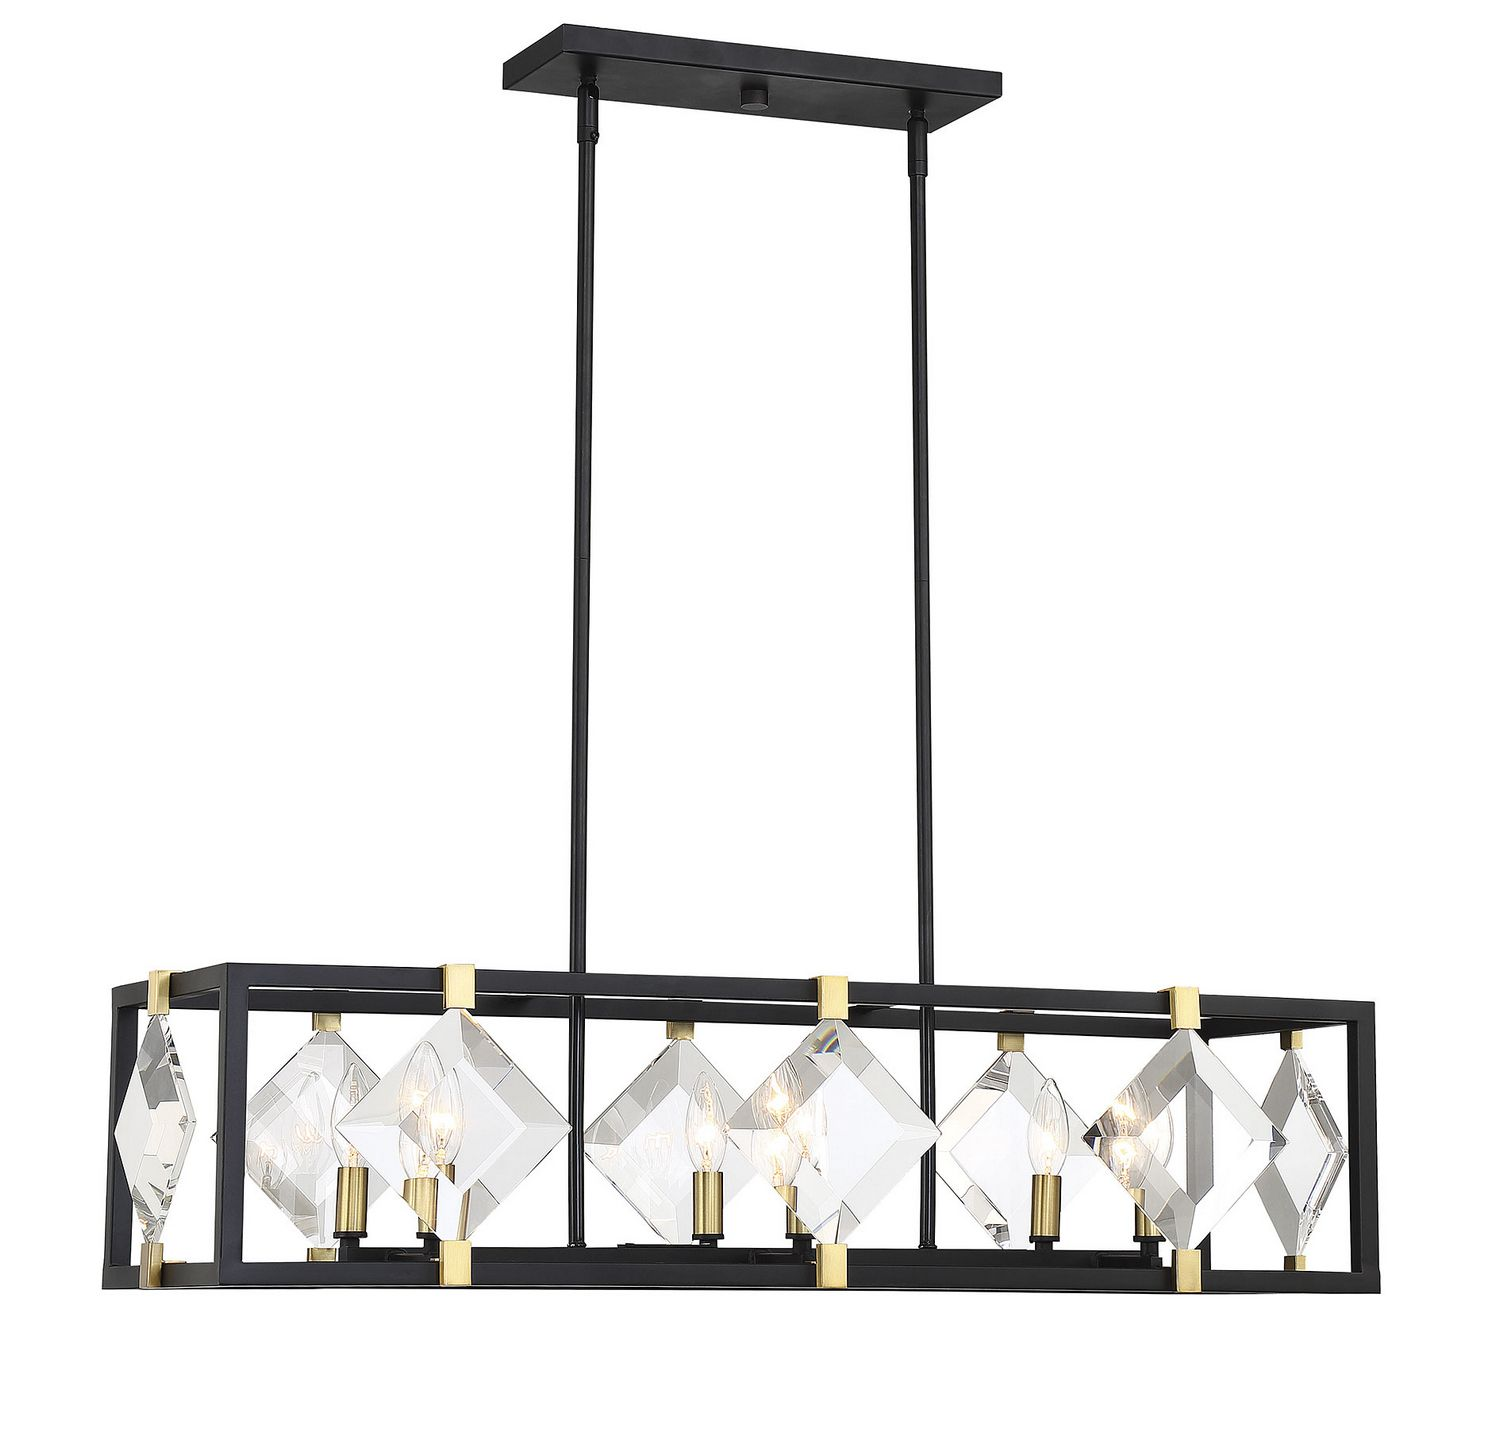 Galaxie Lighting Home Decor In 2019 Ceiling